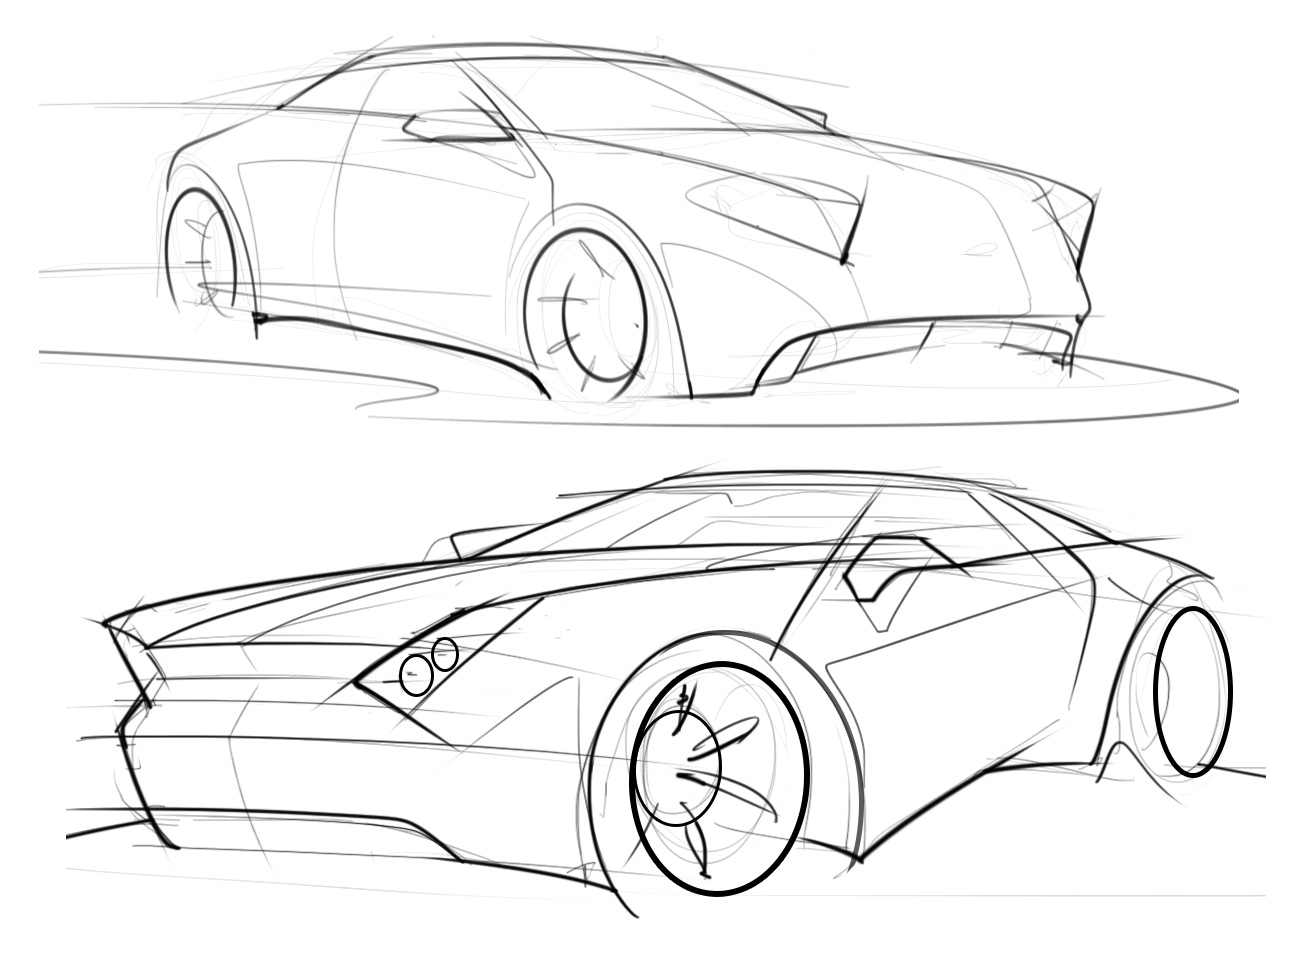 1294x959 Car Sketches With A Hard Edge Design Language Scottdesigner